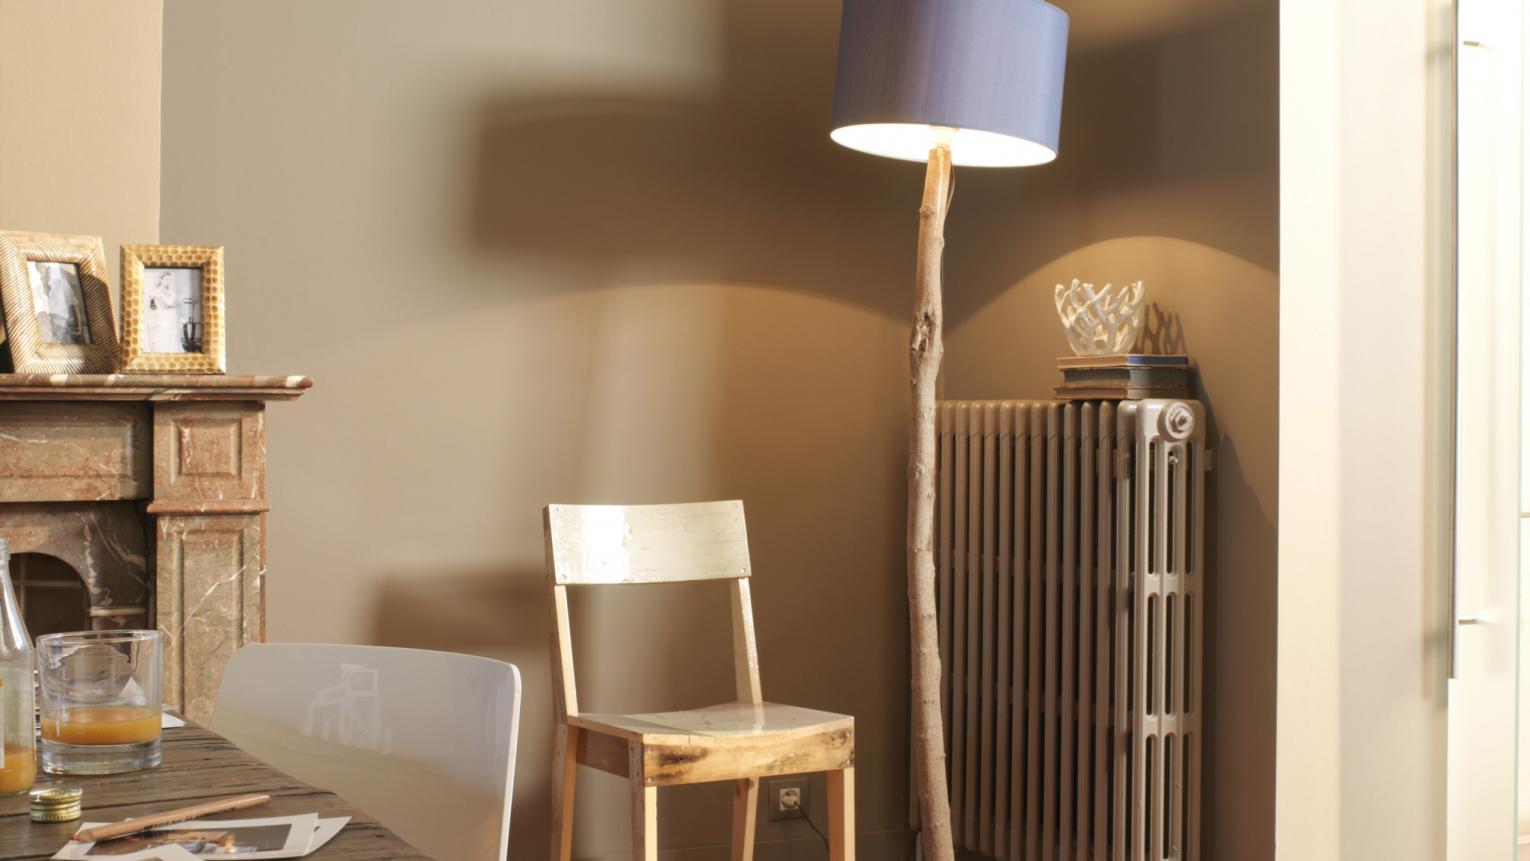 Warm shades of coffee-inspired browns set off wood tones.